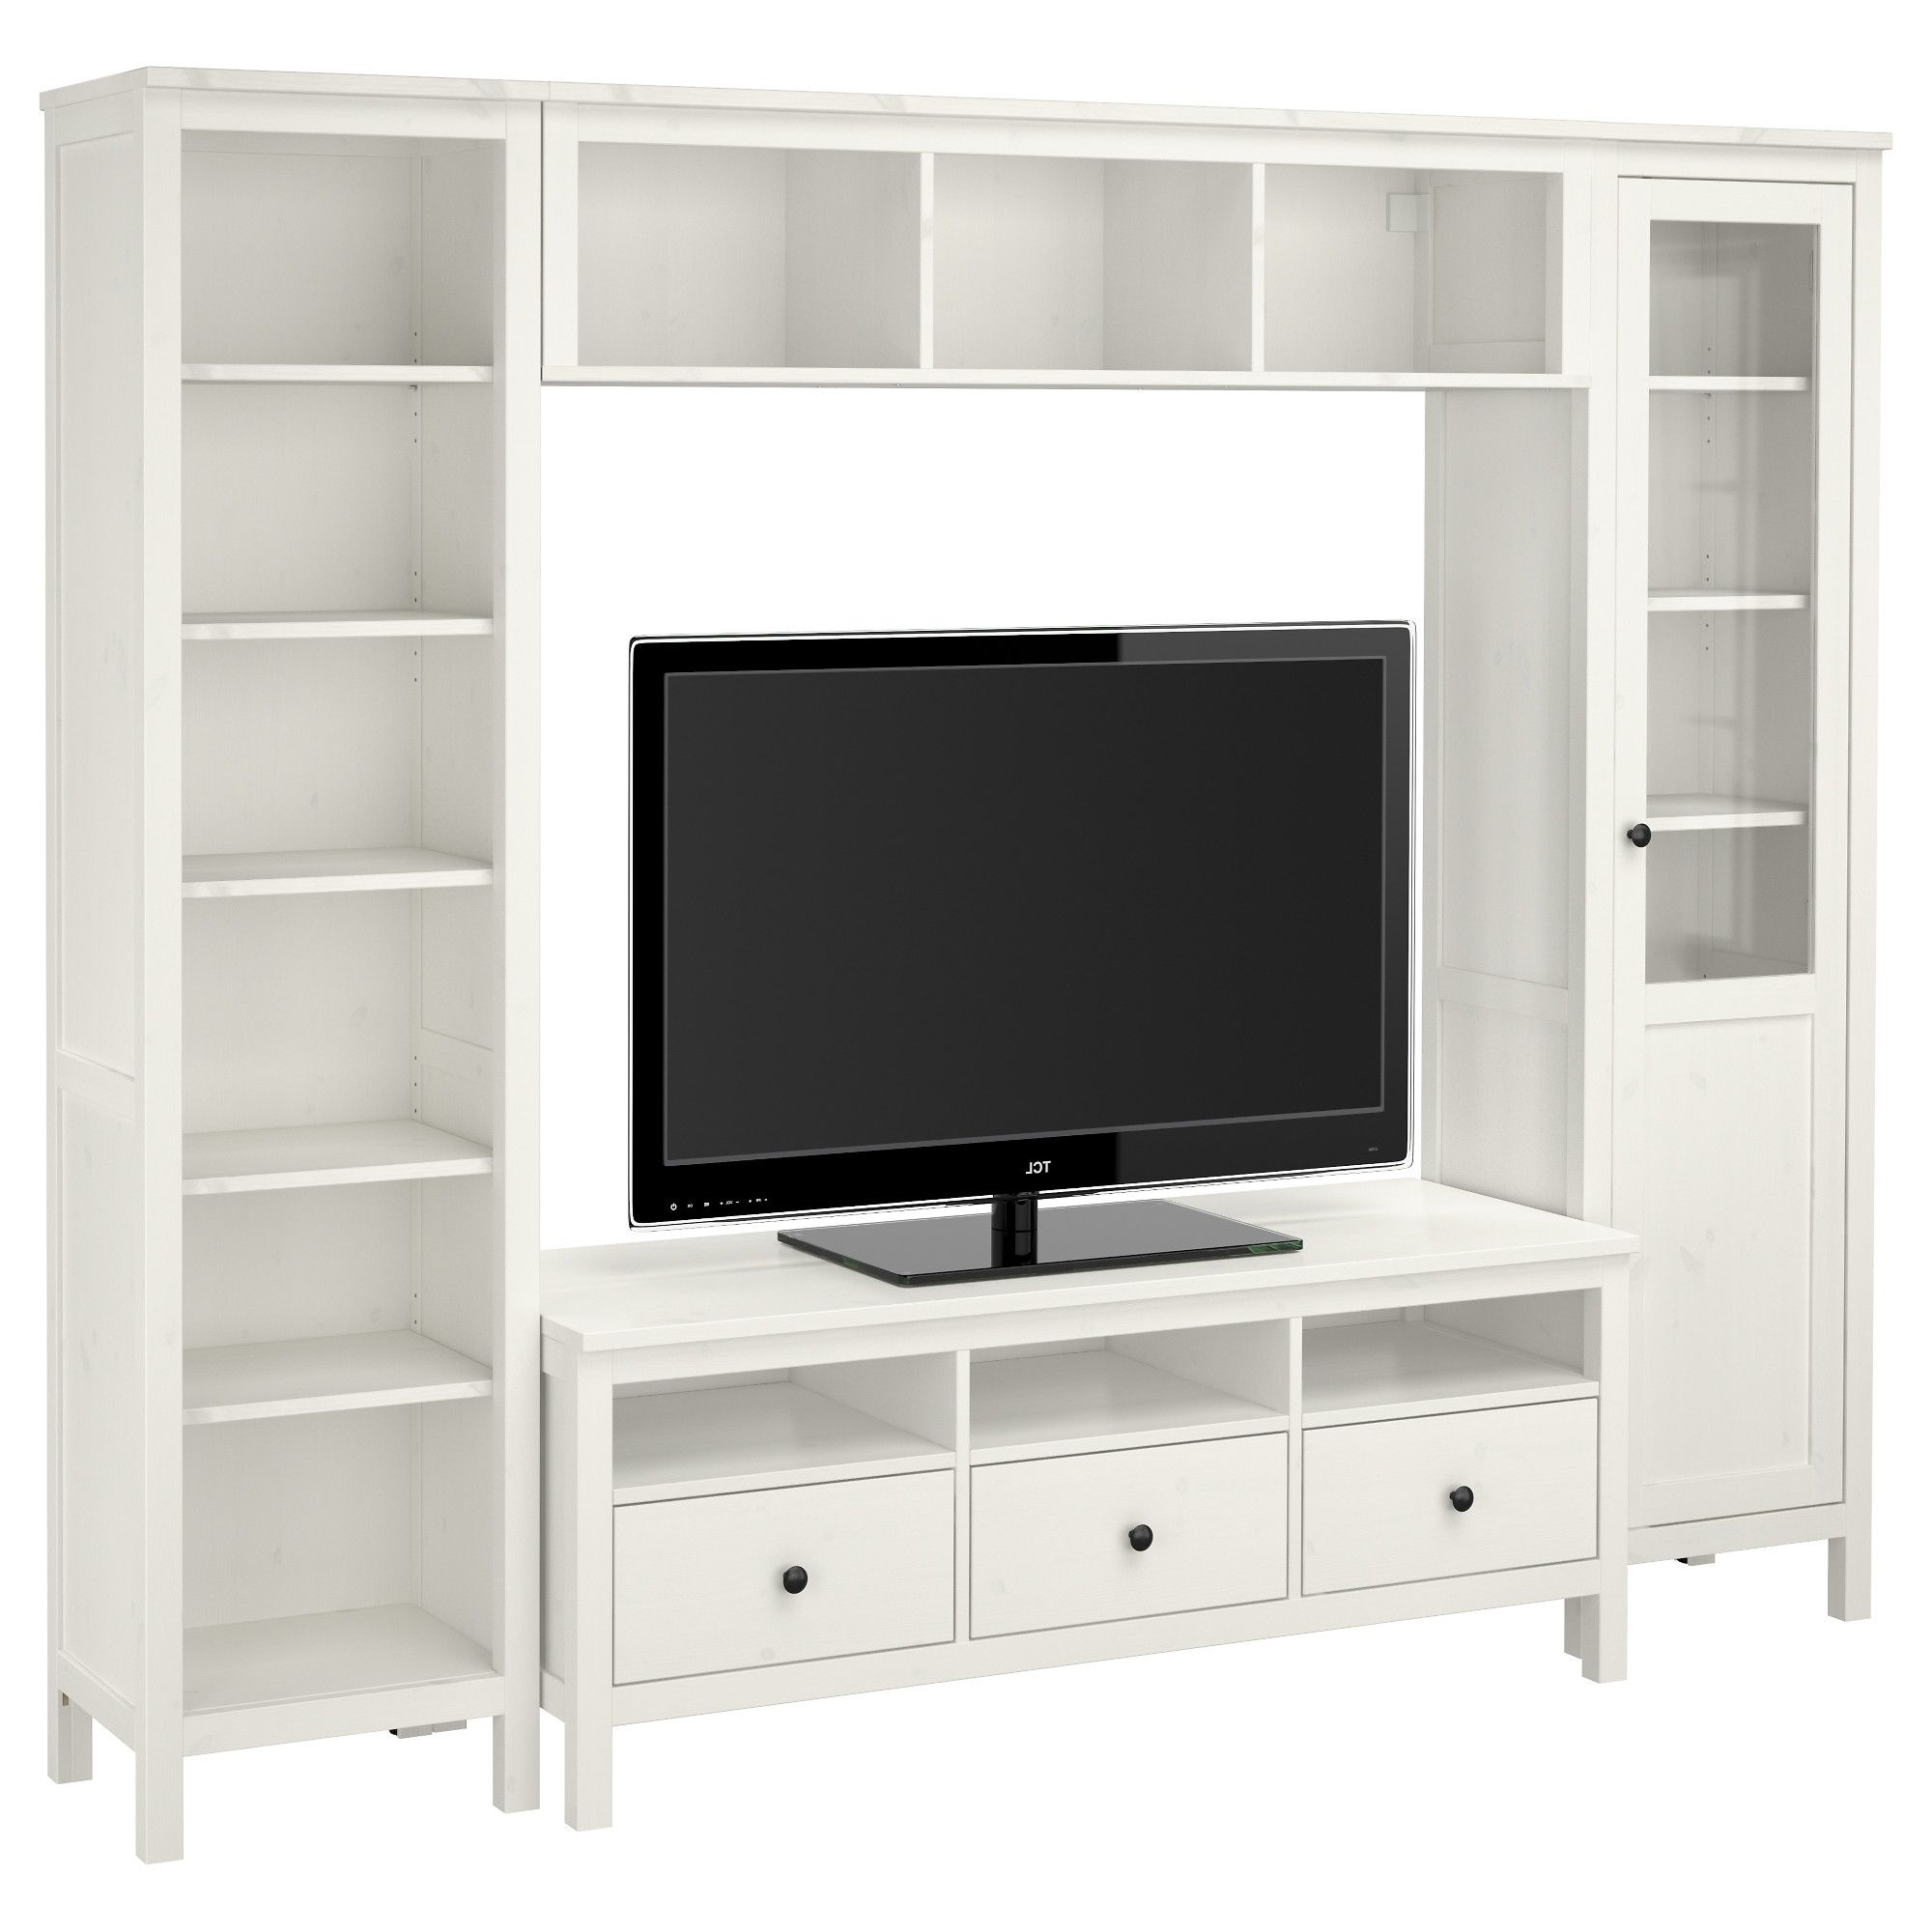 Hemnes Tv Storage Combination – White Stain – Ikea Width: 97 1/4 Pertaining To Dixon White 58 Inch Tv Stands (View 13 of 20)